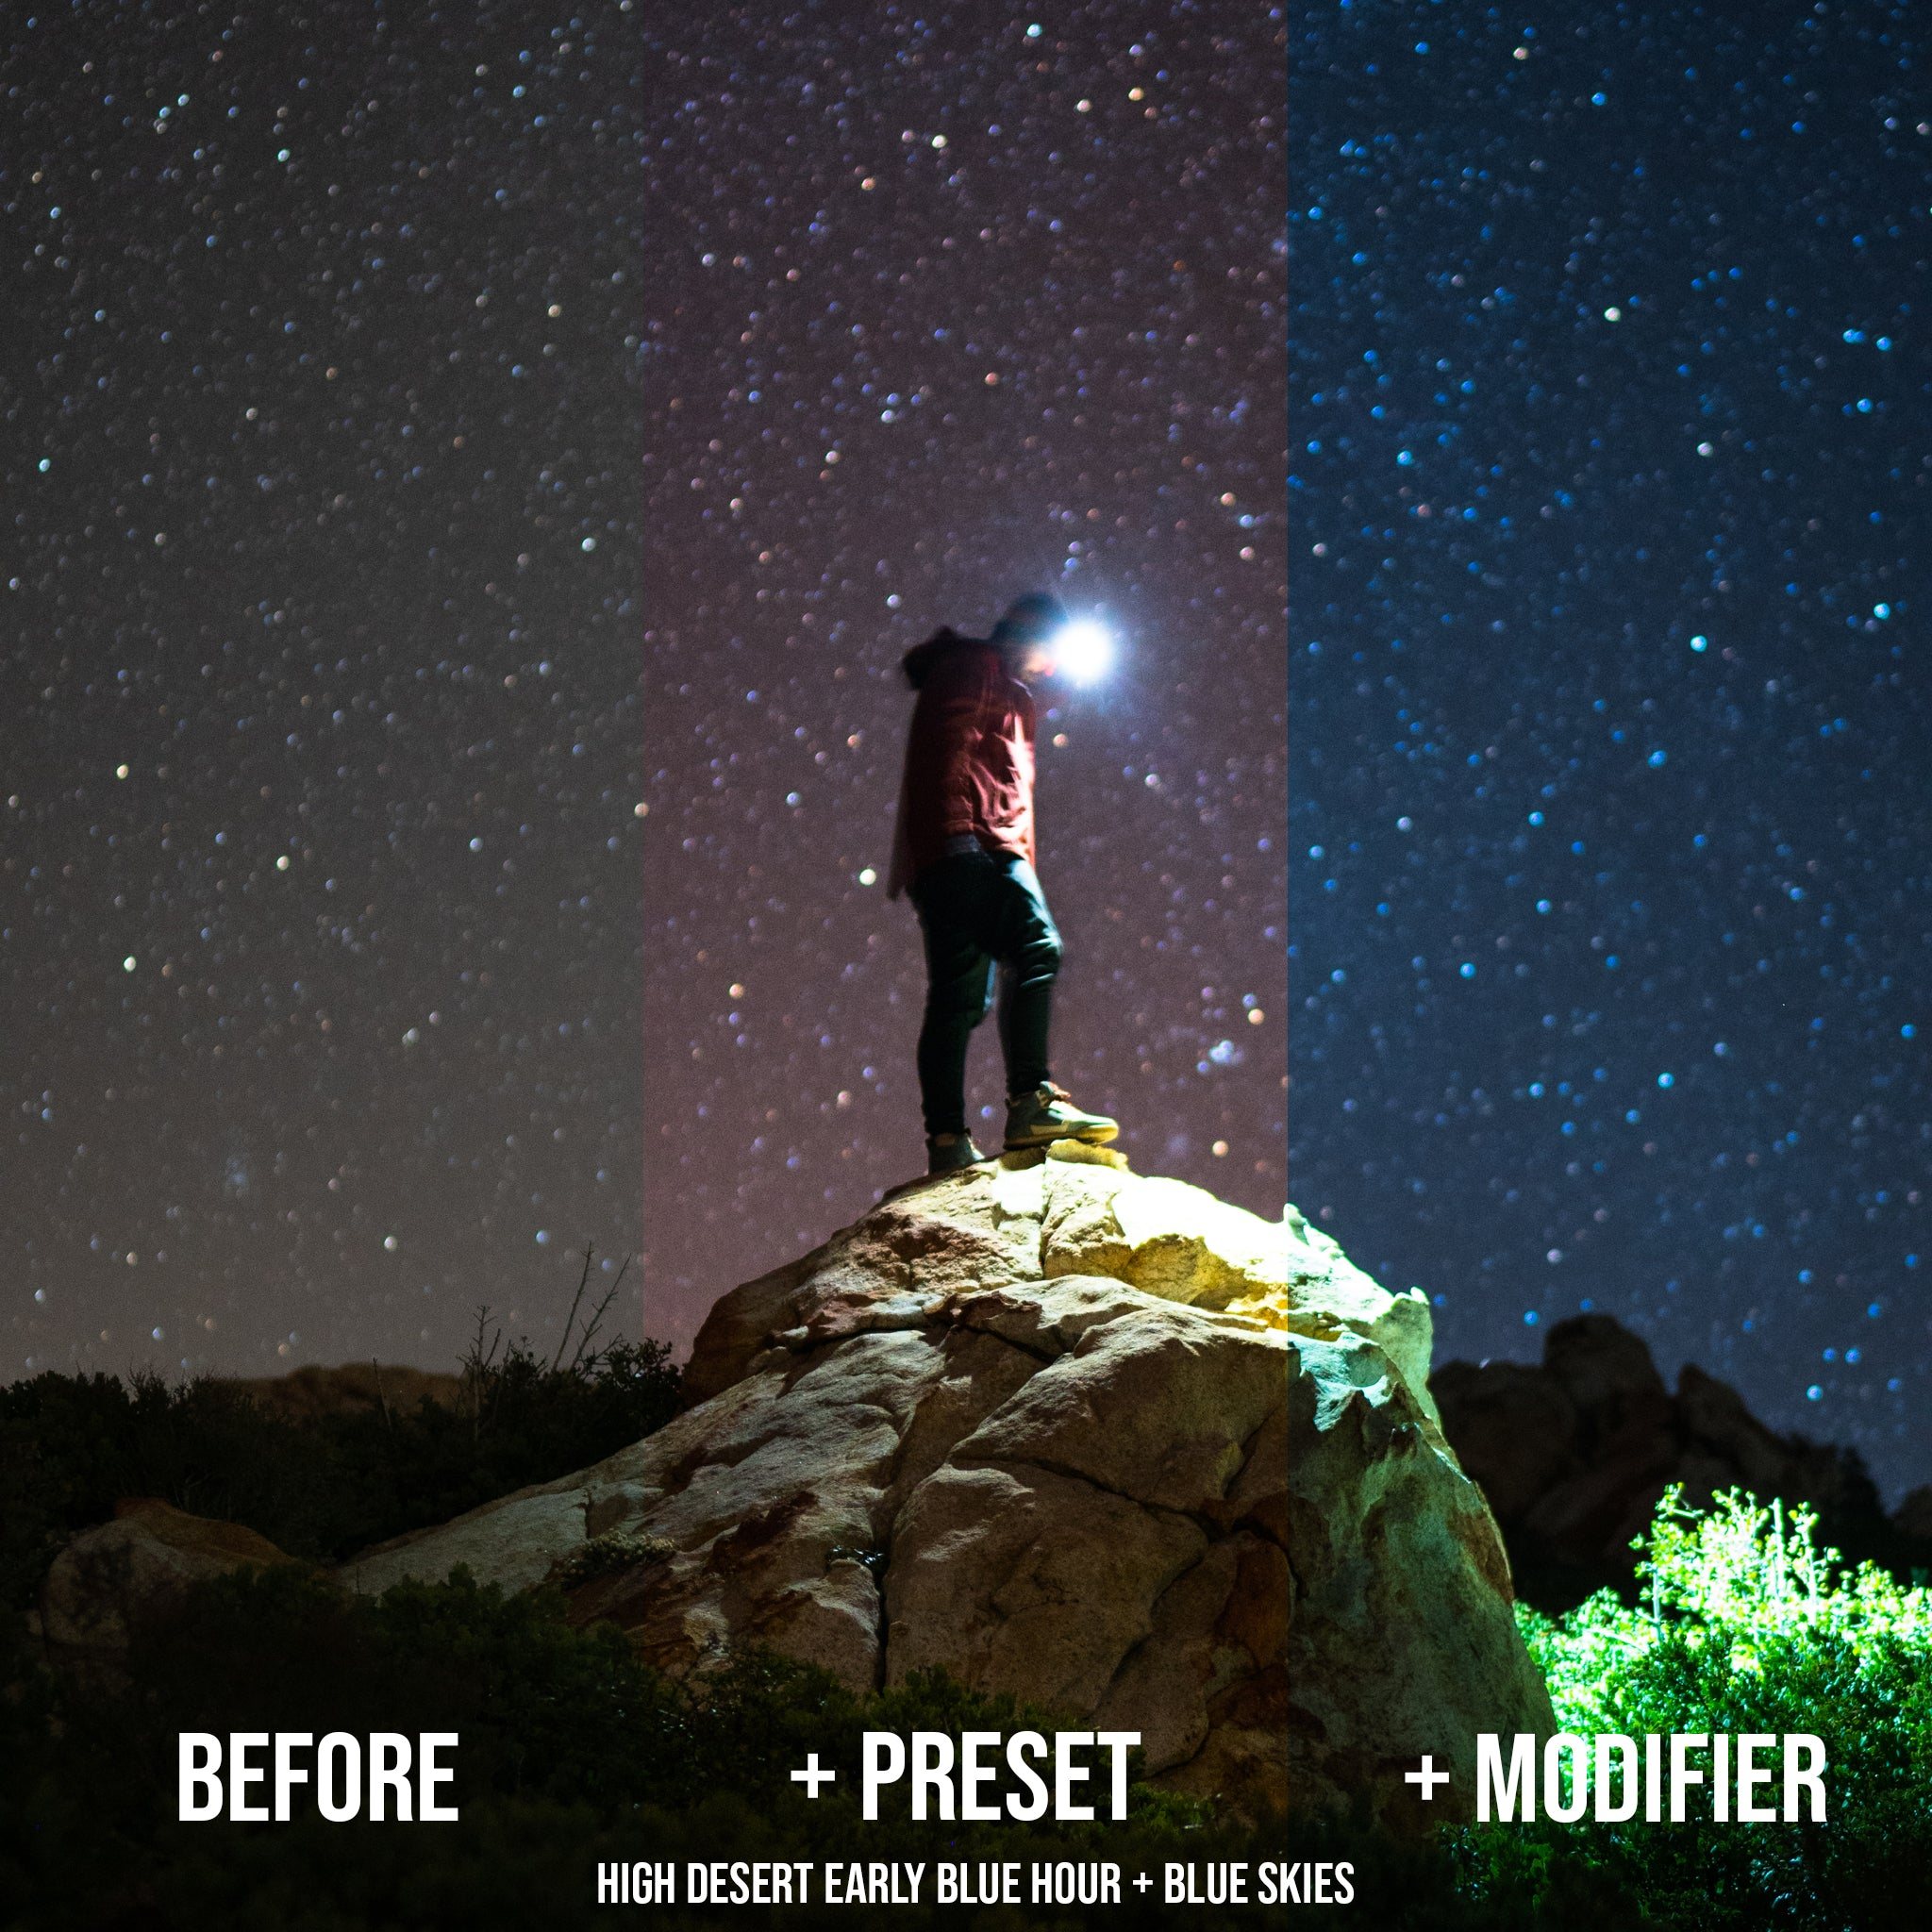 Astrophotography Presets for Lightroom BUNDLE - Starlight & Galactic Preset Collections + Exclusive Brushes + Comet Preset Bonus